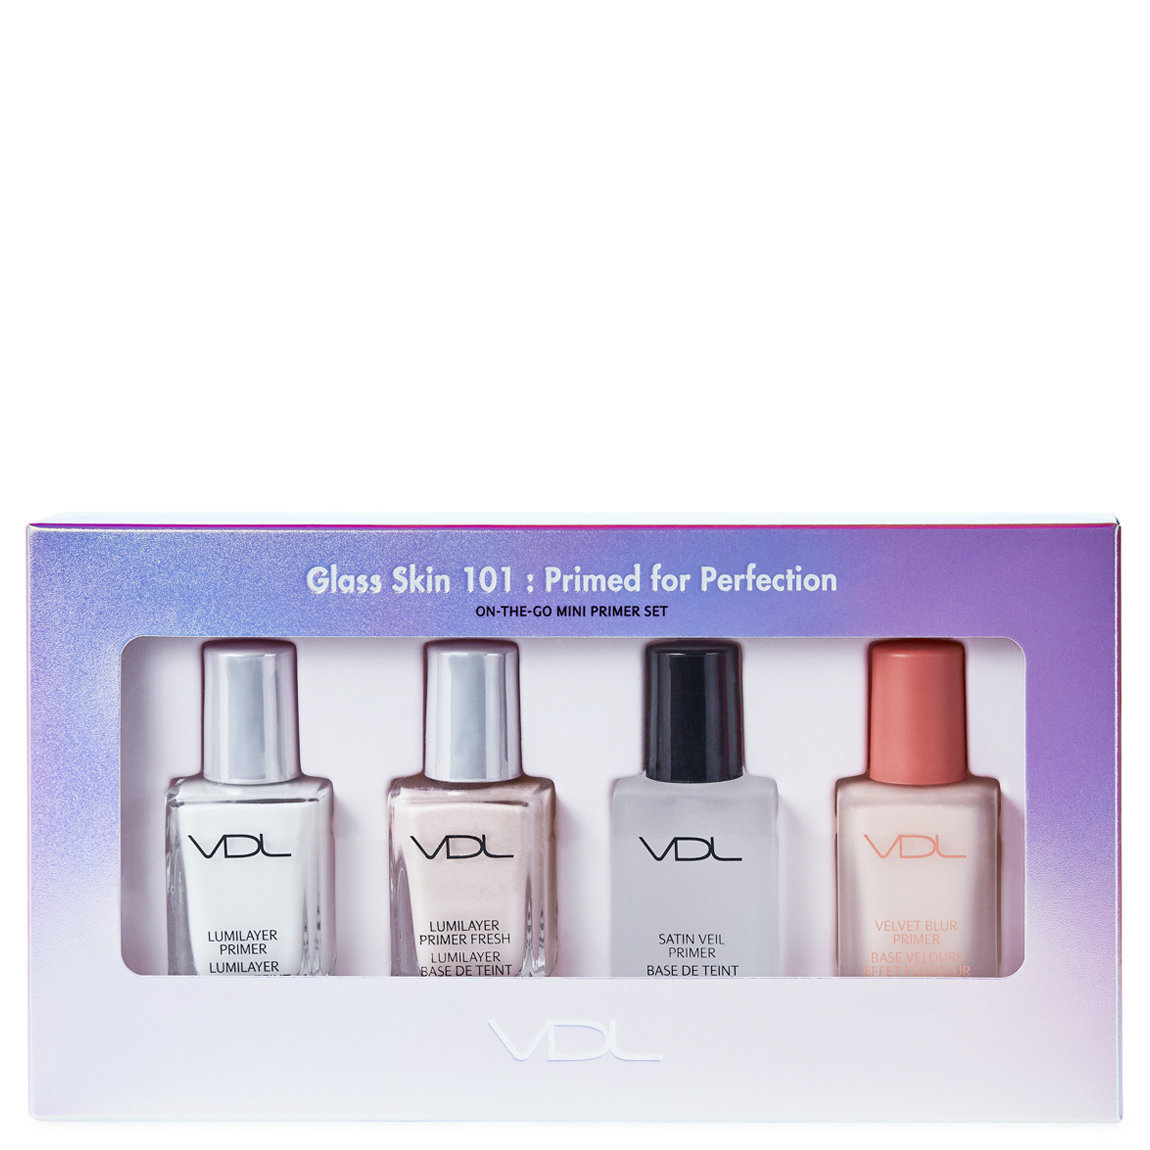 VDL Glass Skin 101: Primed for Perfection Mini Primer Set alternative view 1 - product swatch.